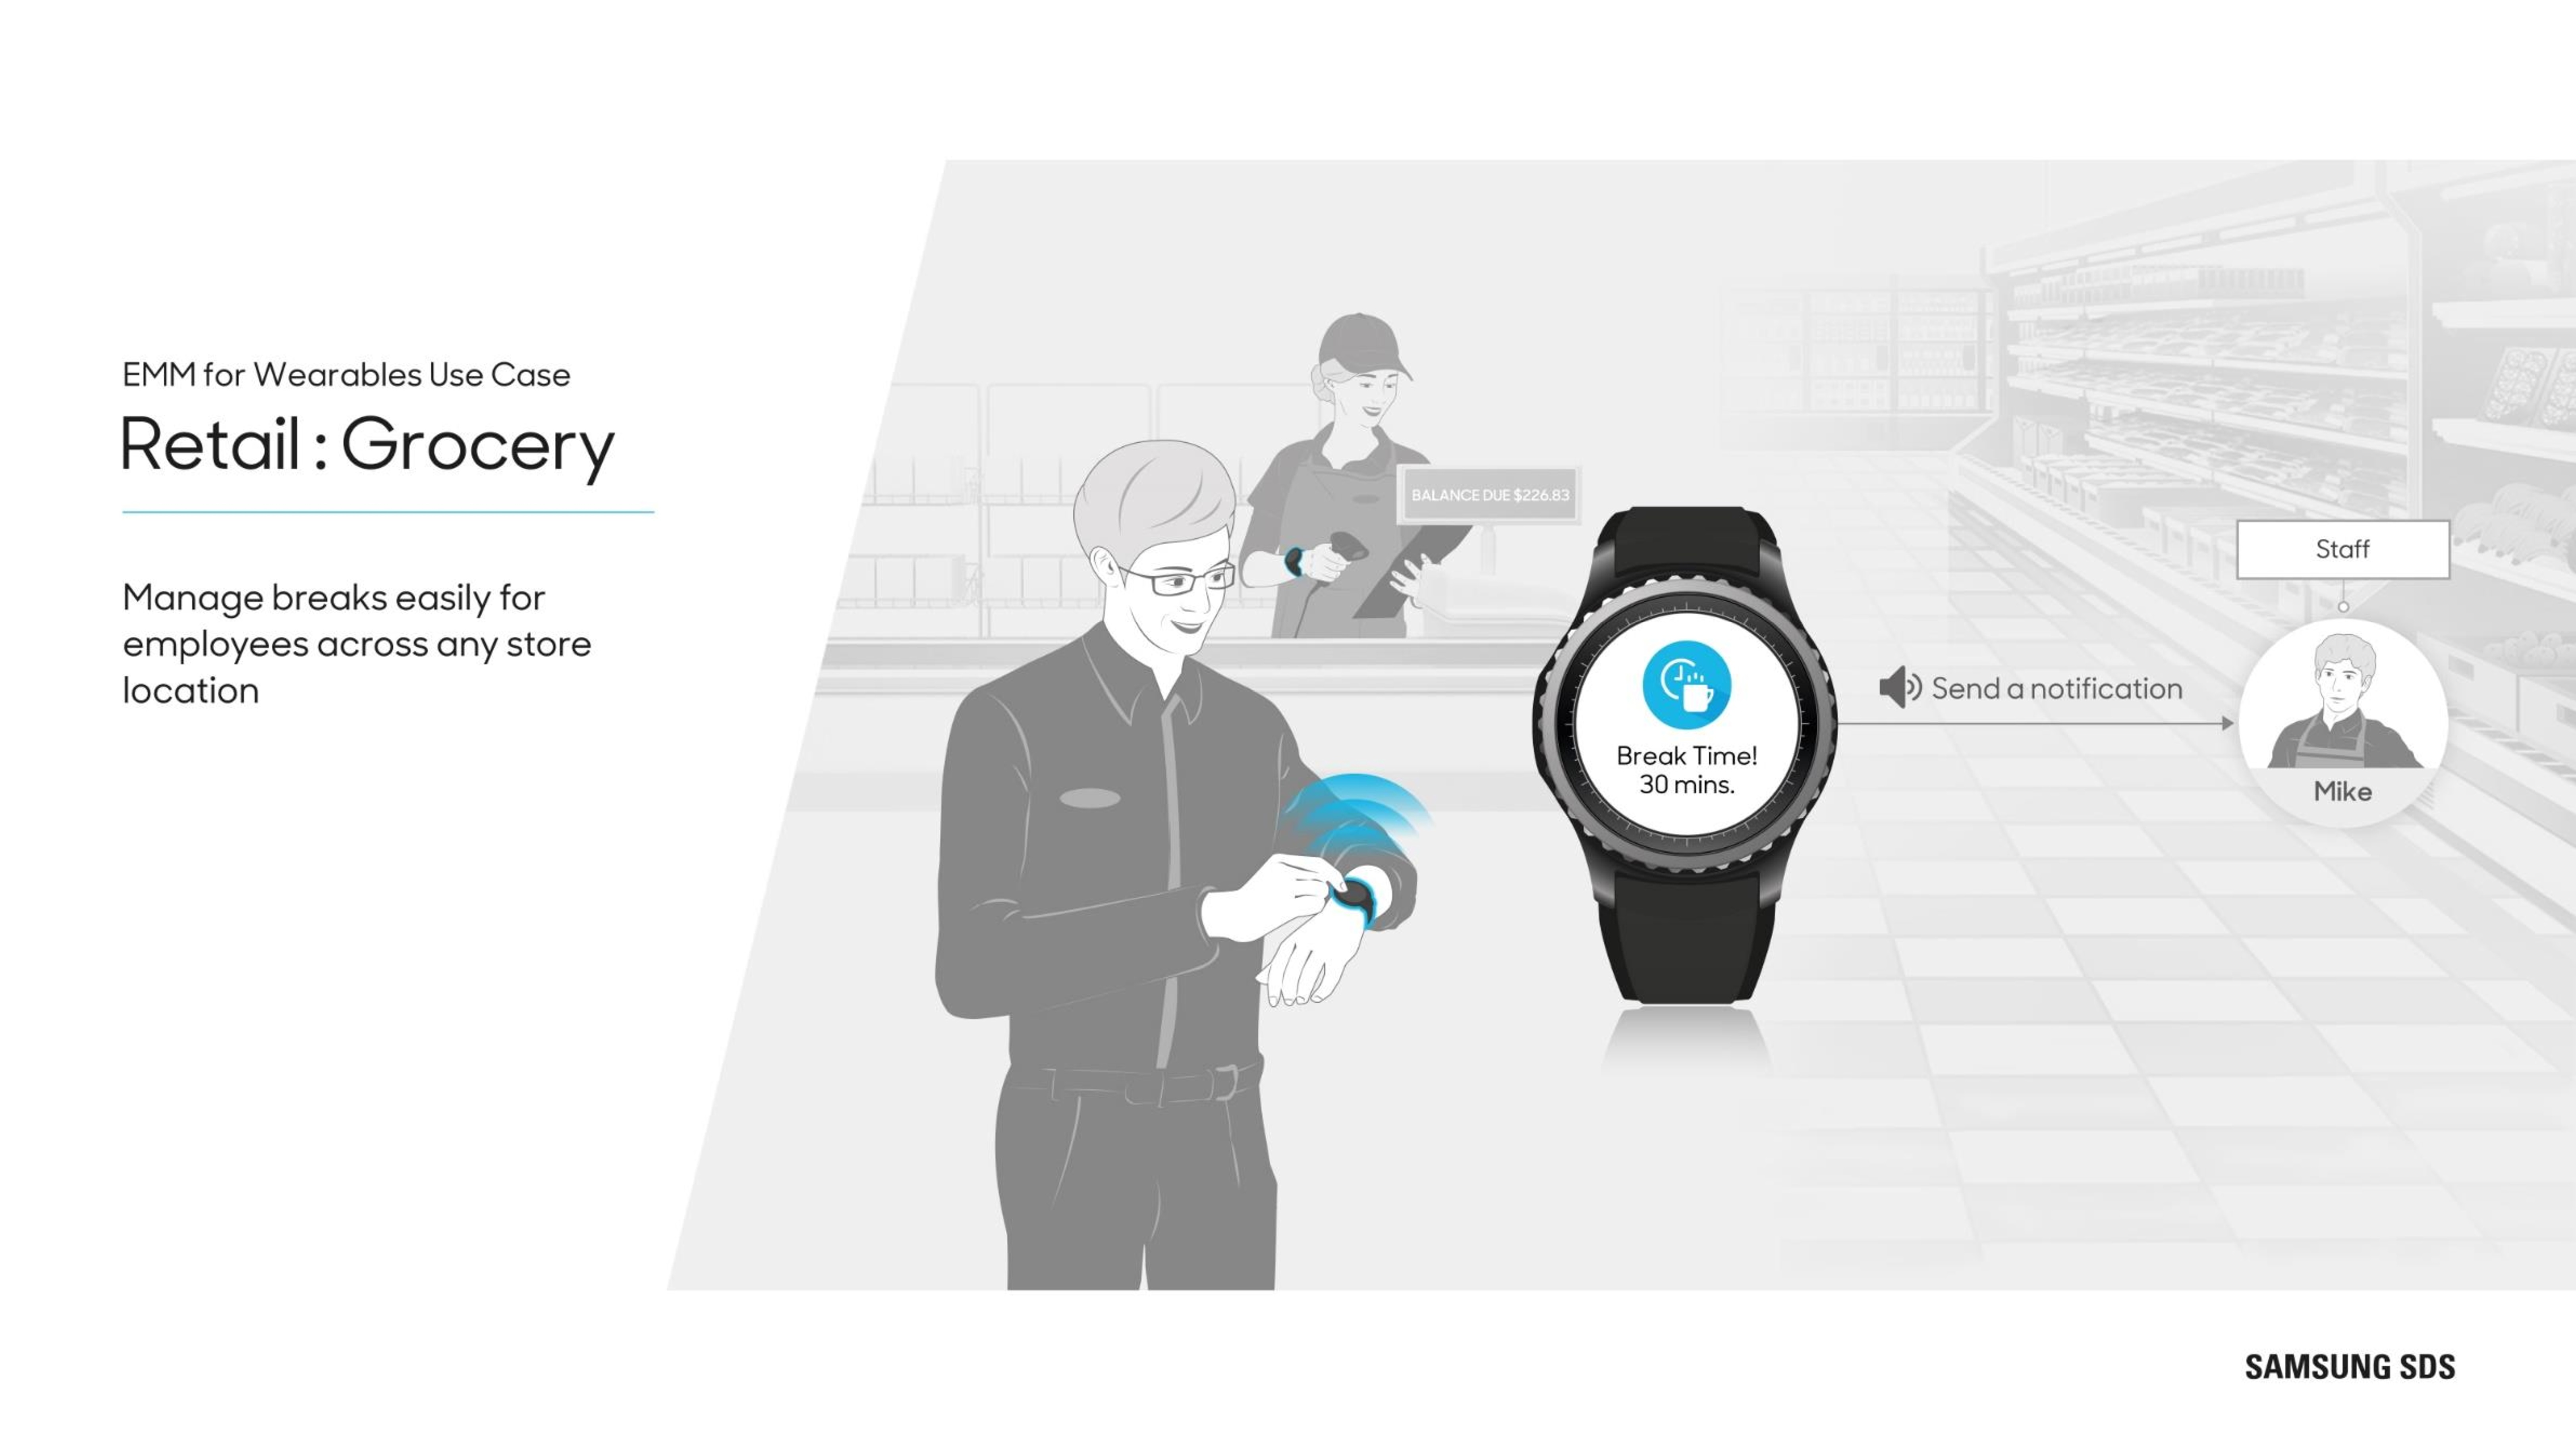 Wearables in Retail Manage breaks easily for employees across any store location